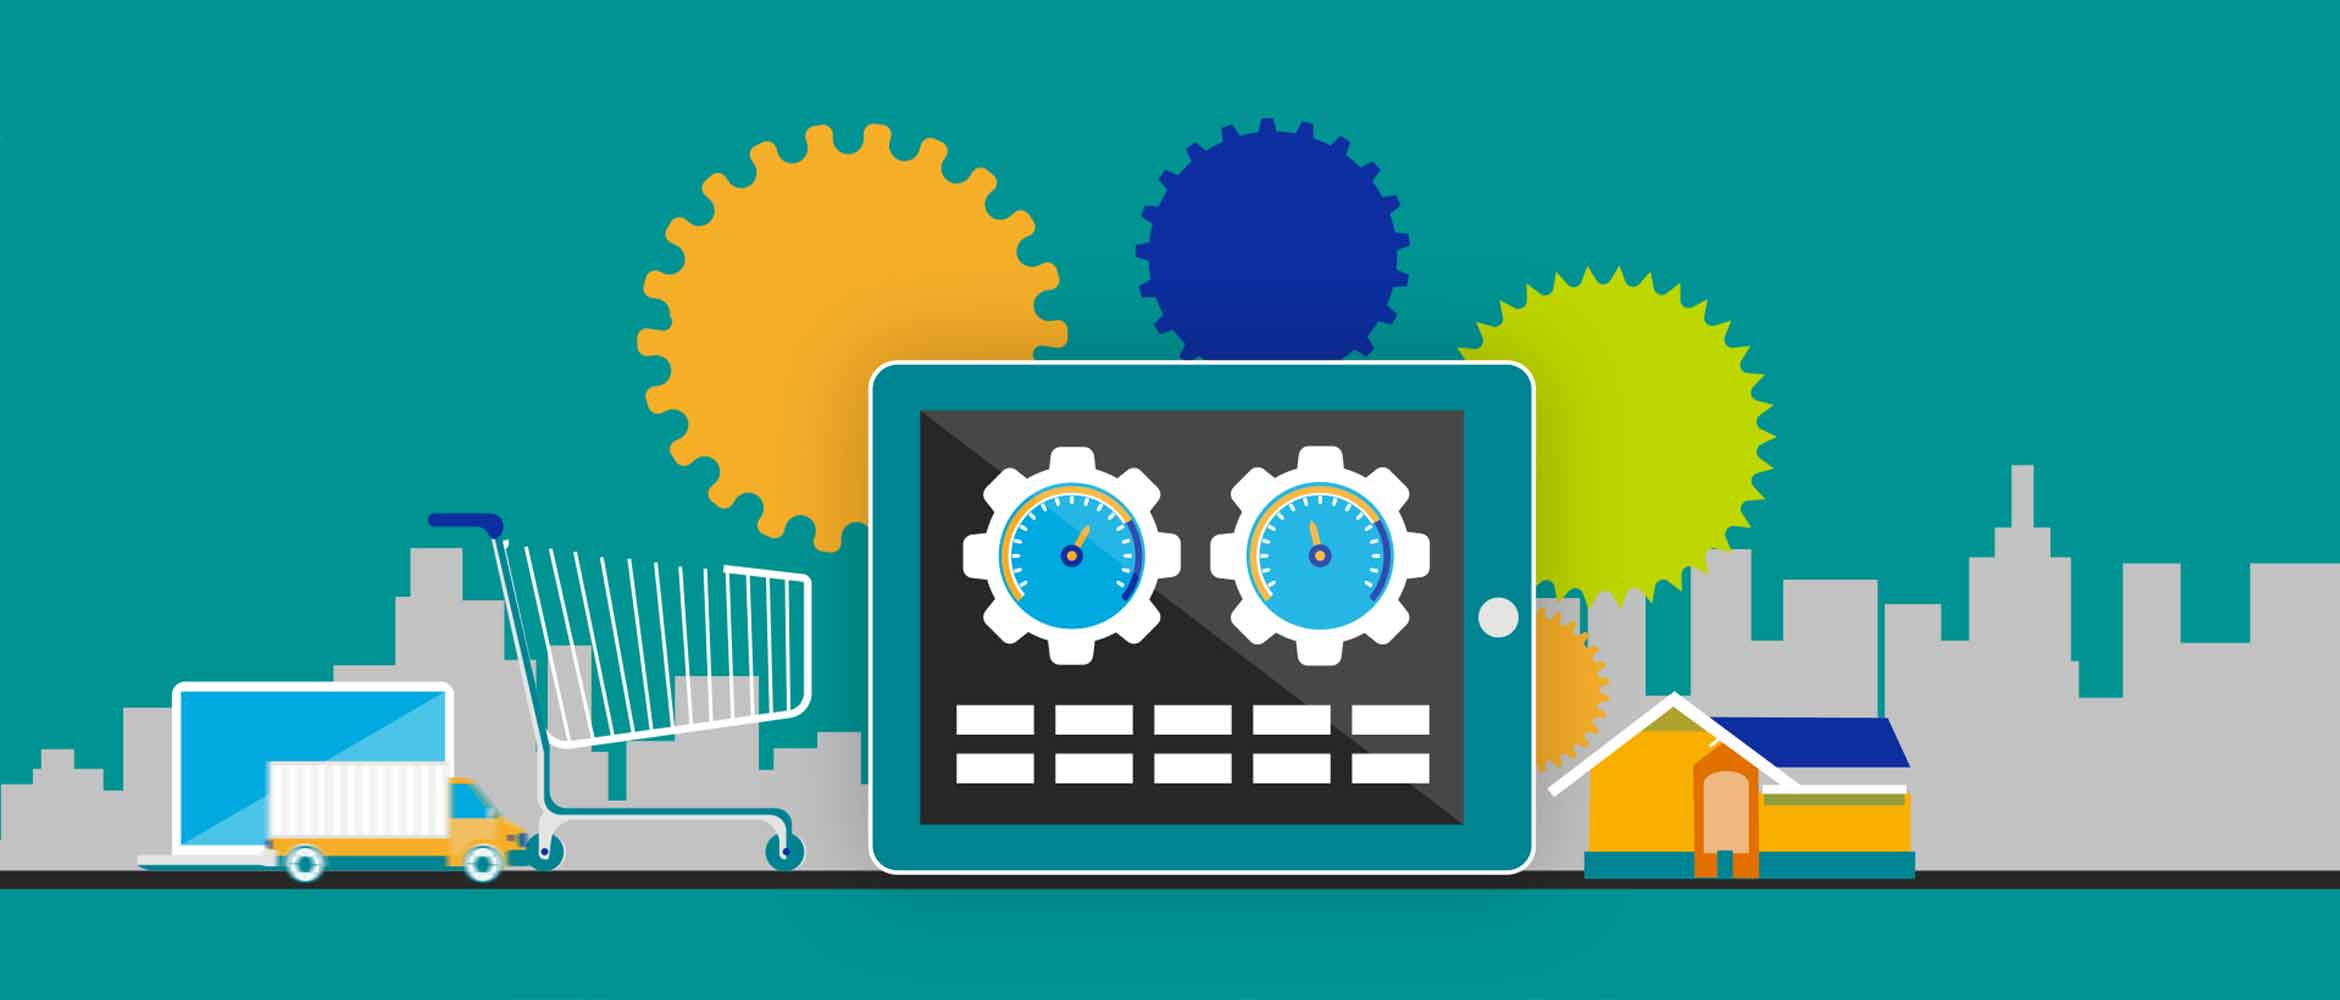 Where next for retail technology?